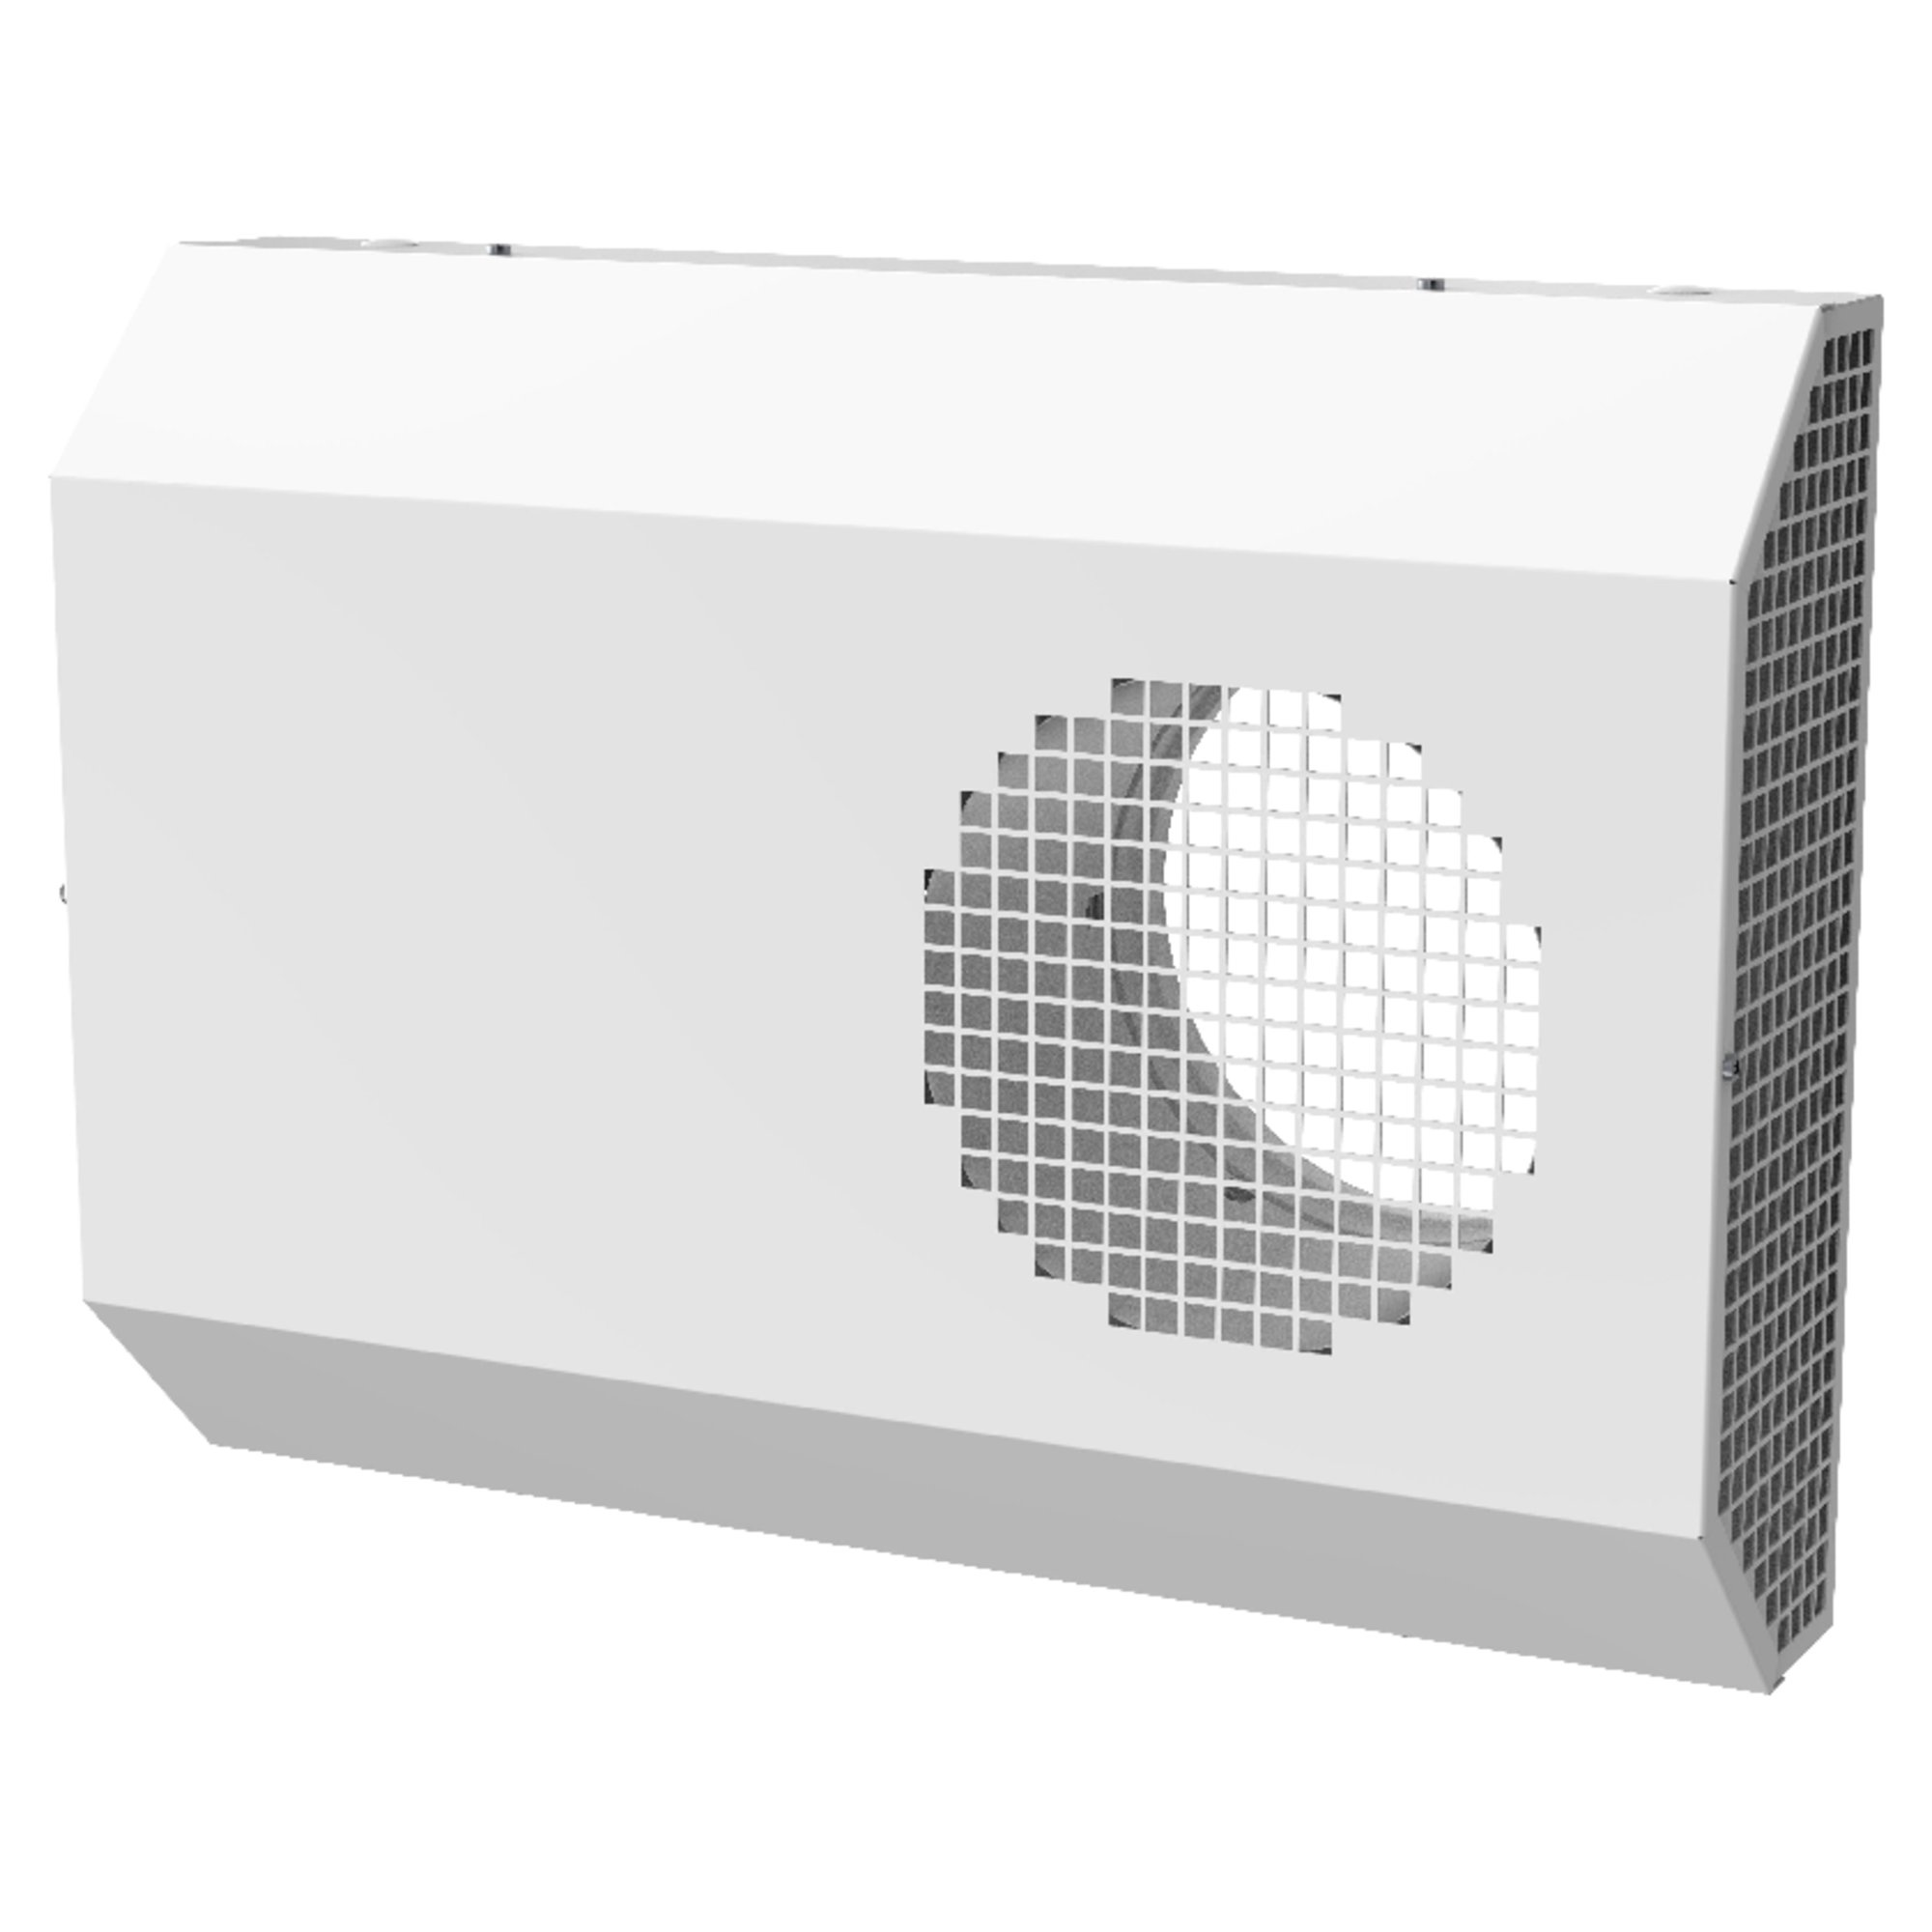 CVVX 315 Combi grille white - Systemair